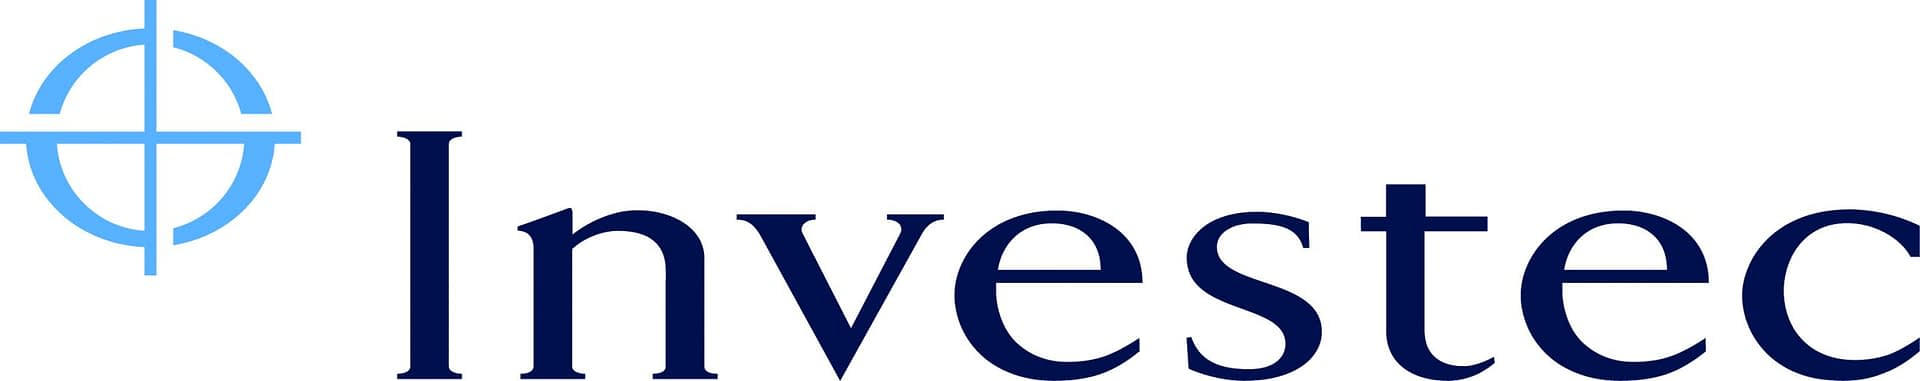 Investec logo-New July 2020